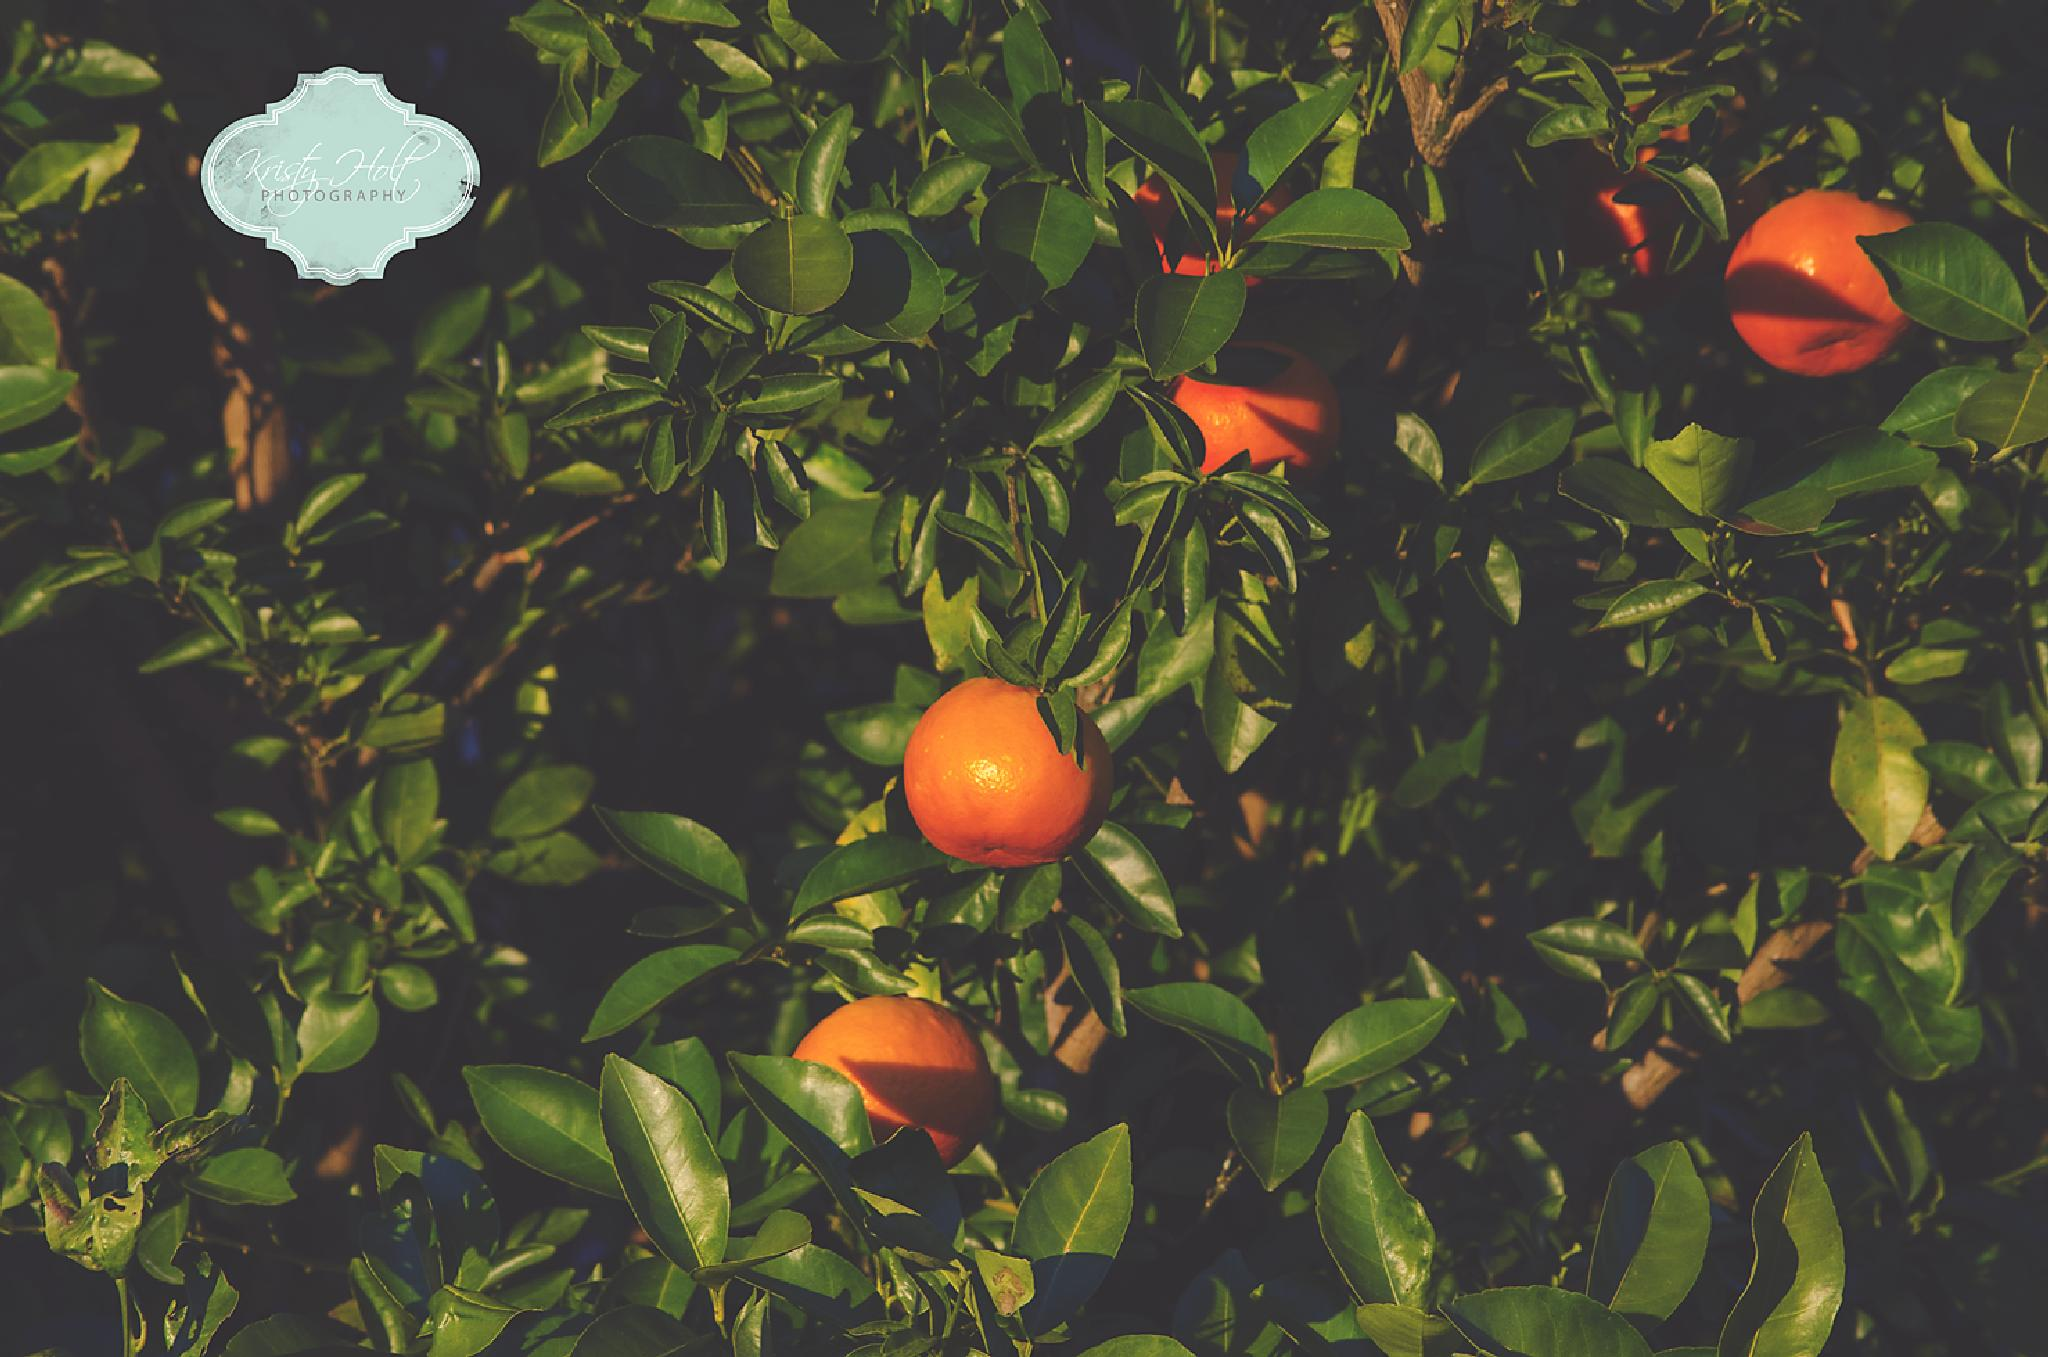 Vitamin C on the tree by Kristy Holt